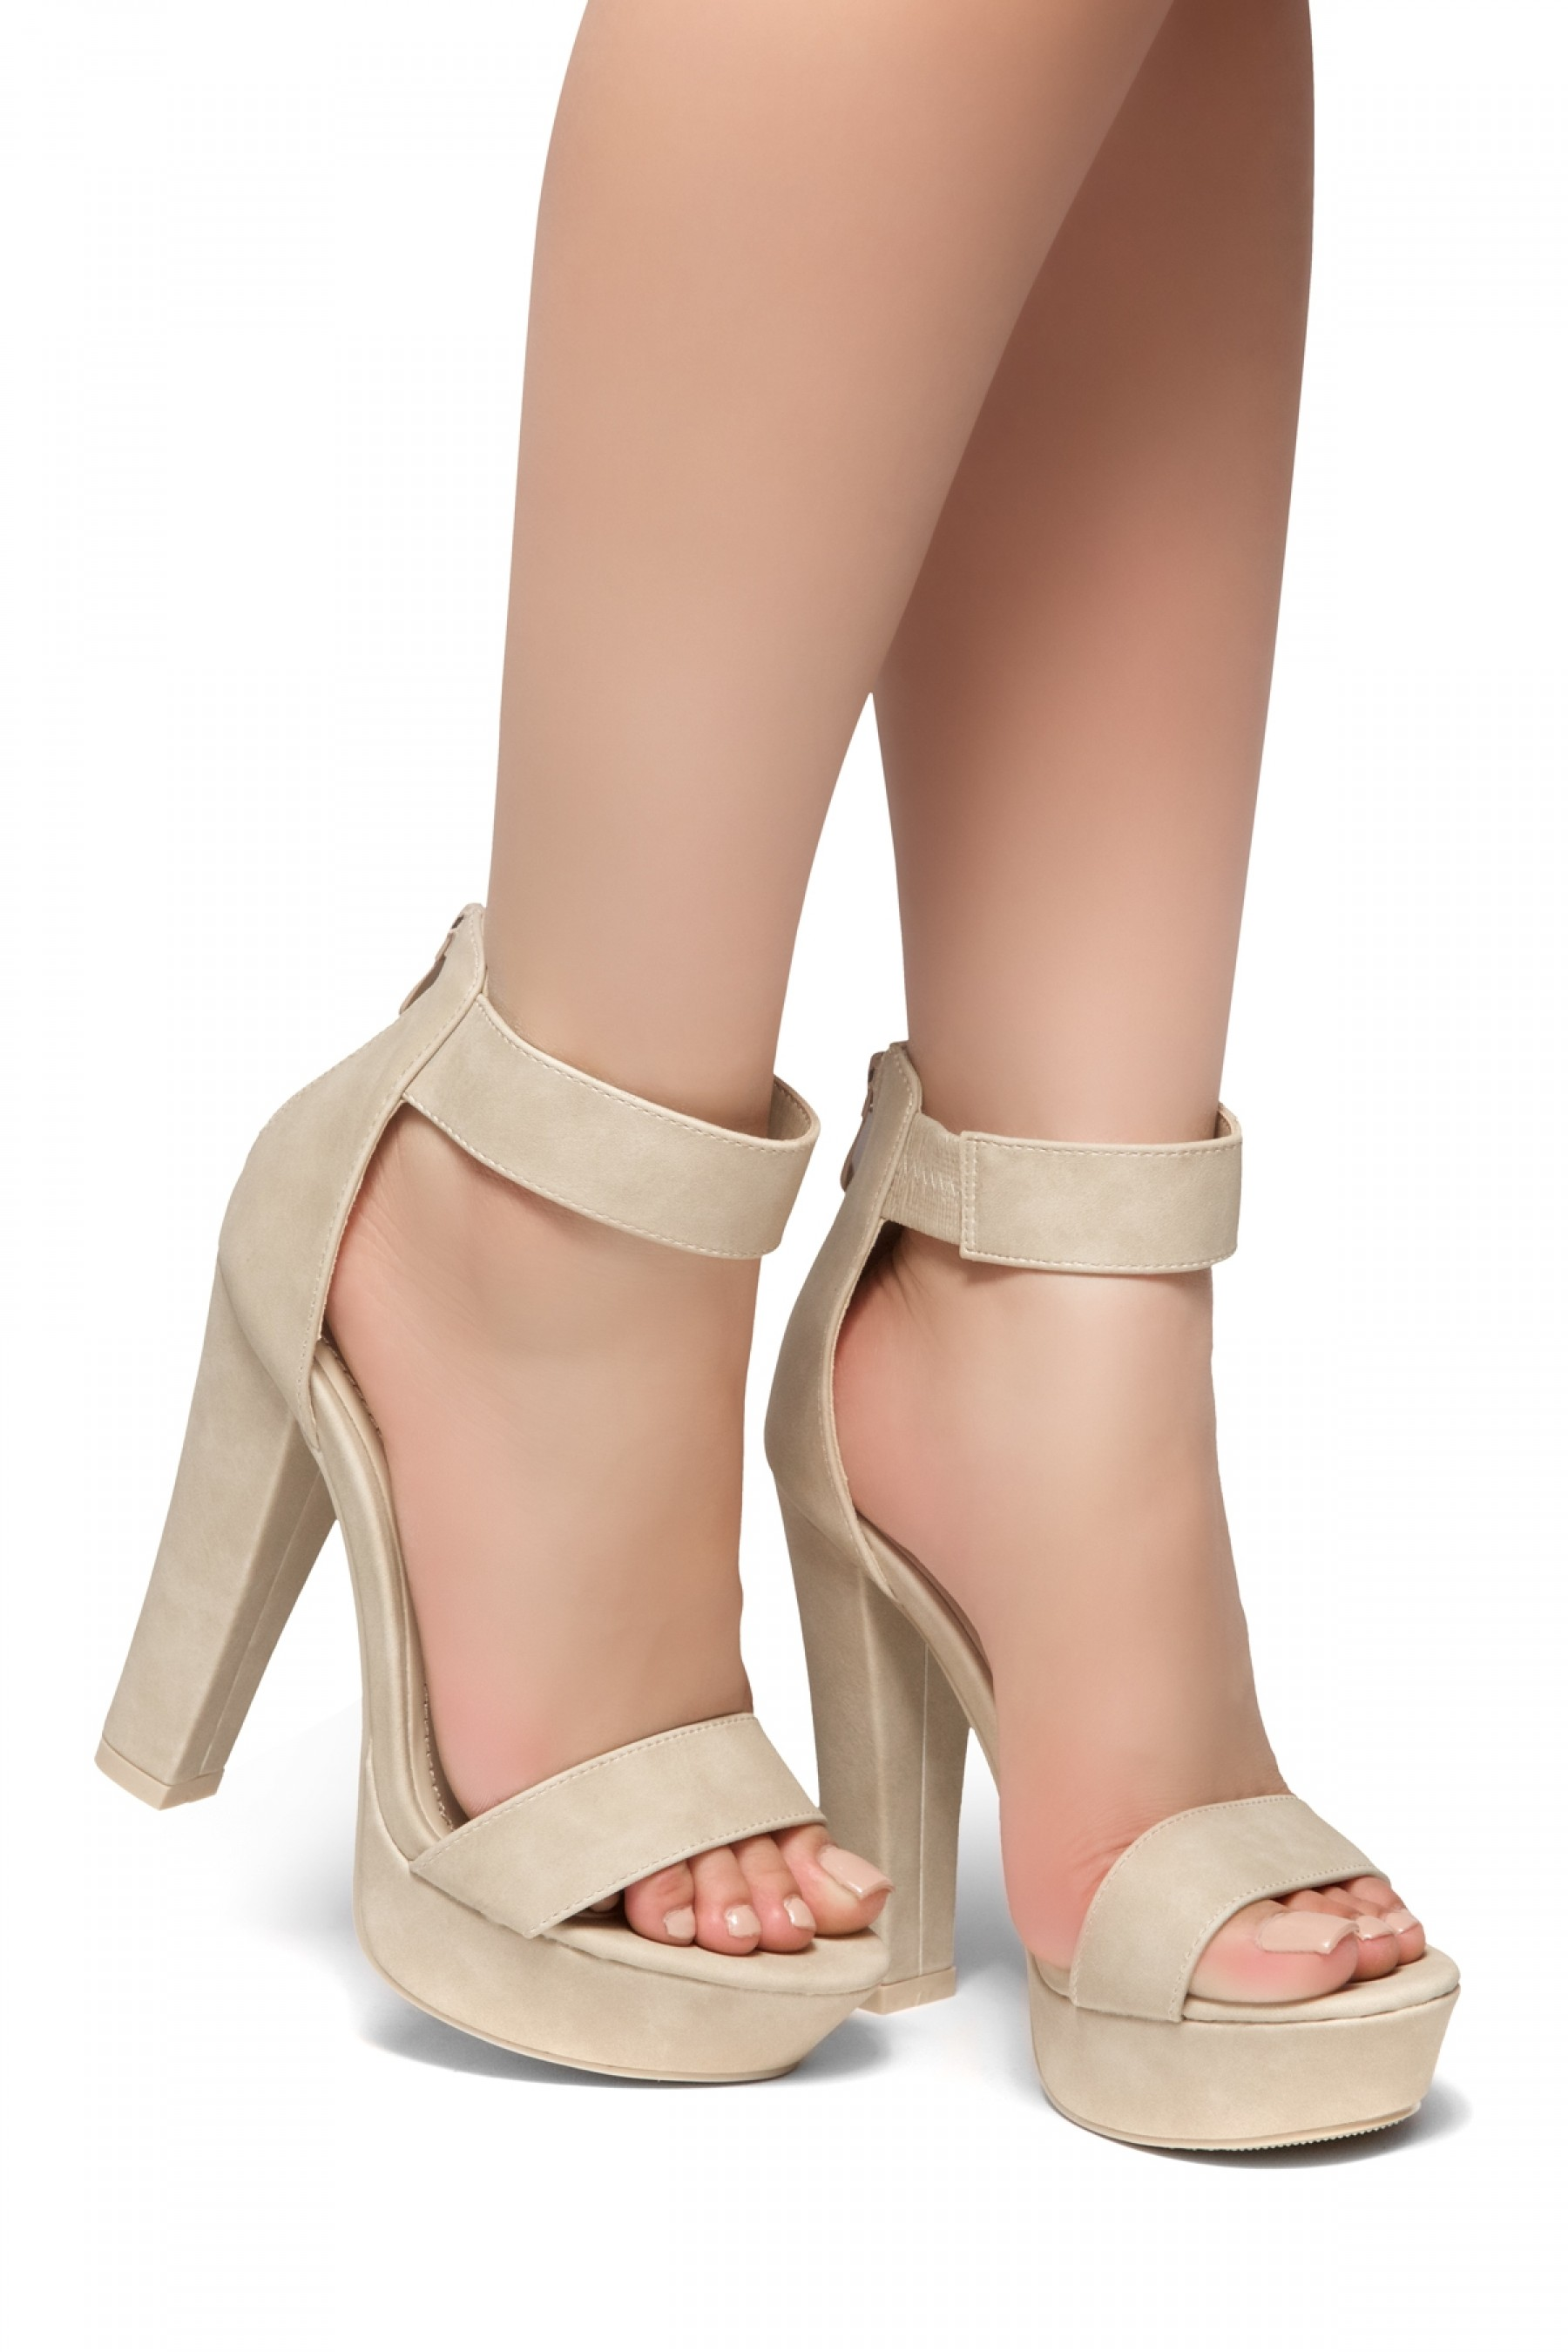 HerStyle Cutesy-Ankle Strap Chunky Platform Heel (Nude)